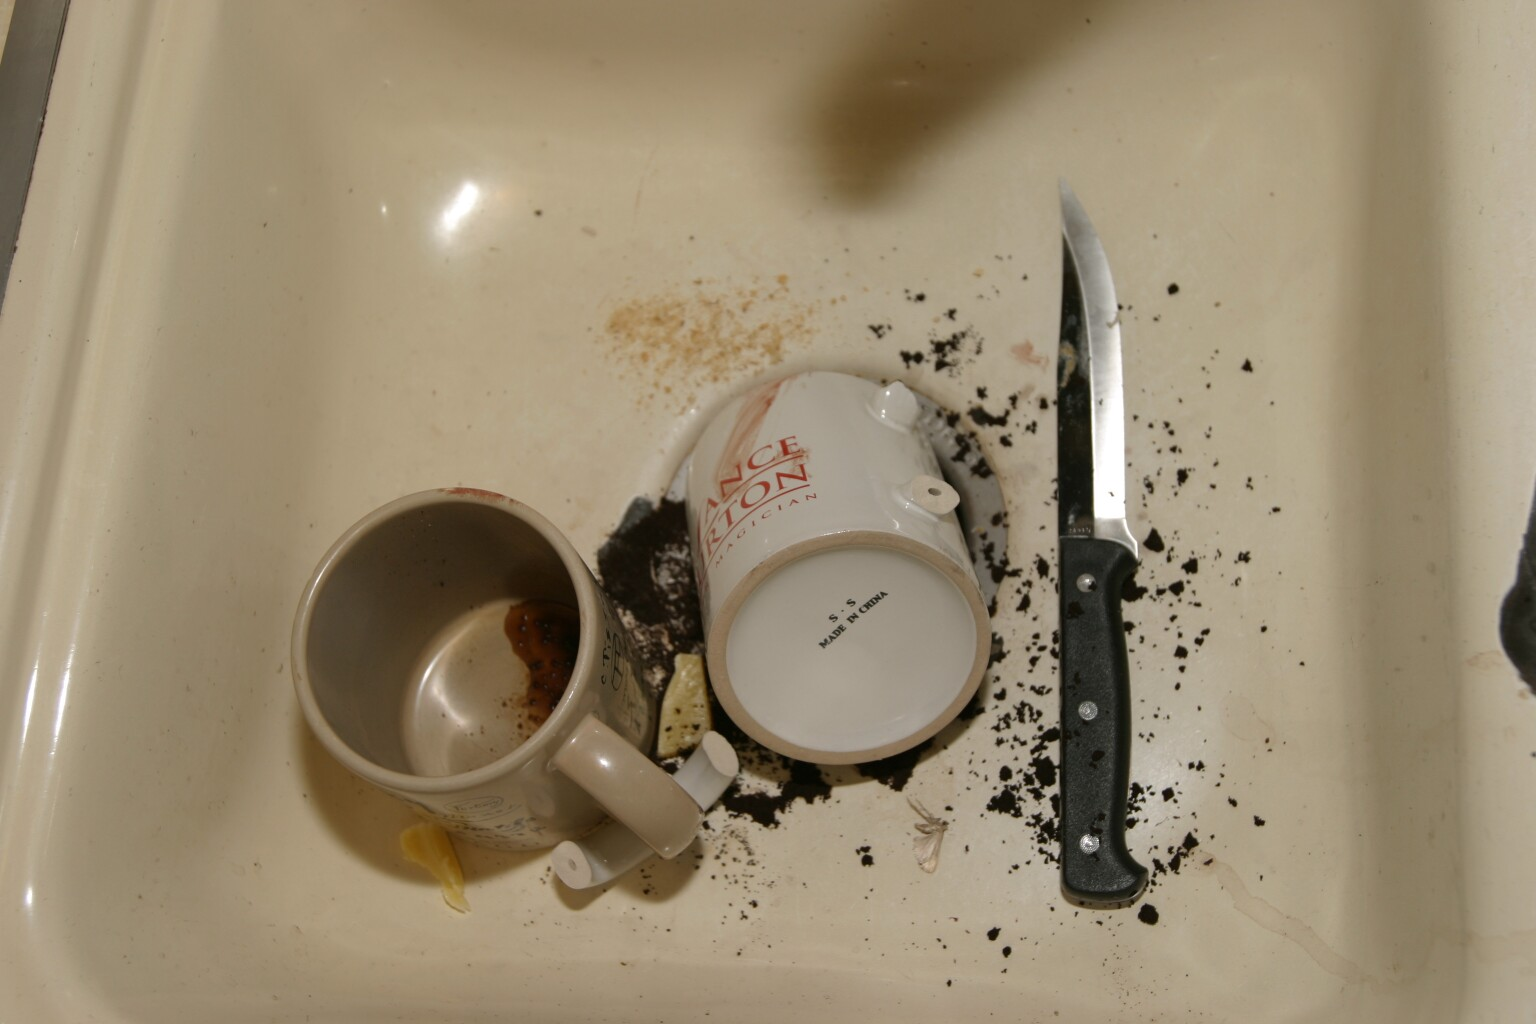 Bloody                                     Cups, Knife, And Coffee Grounds in                                     Sink